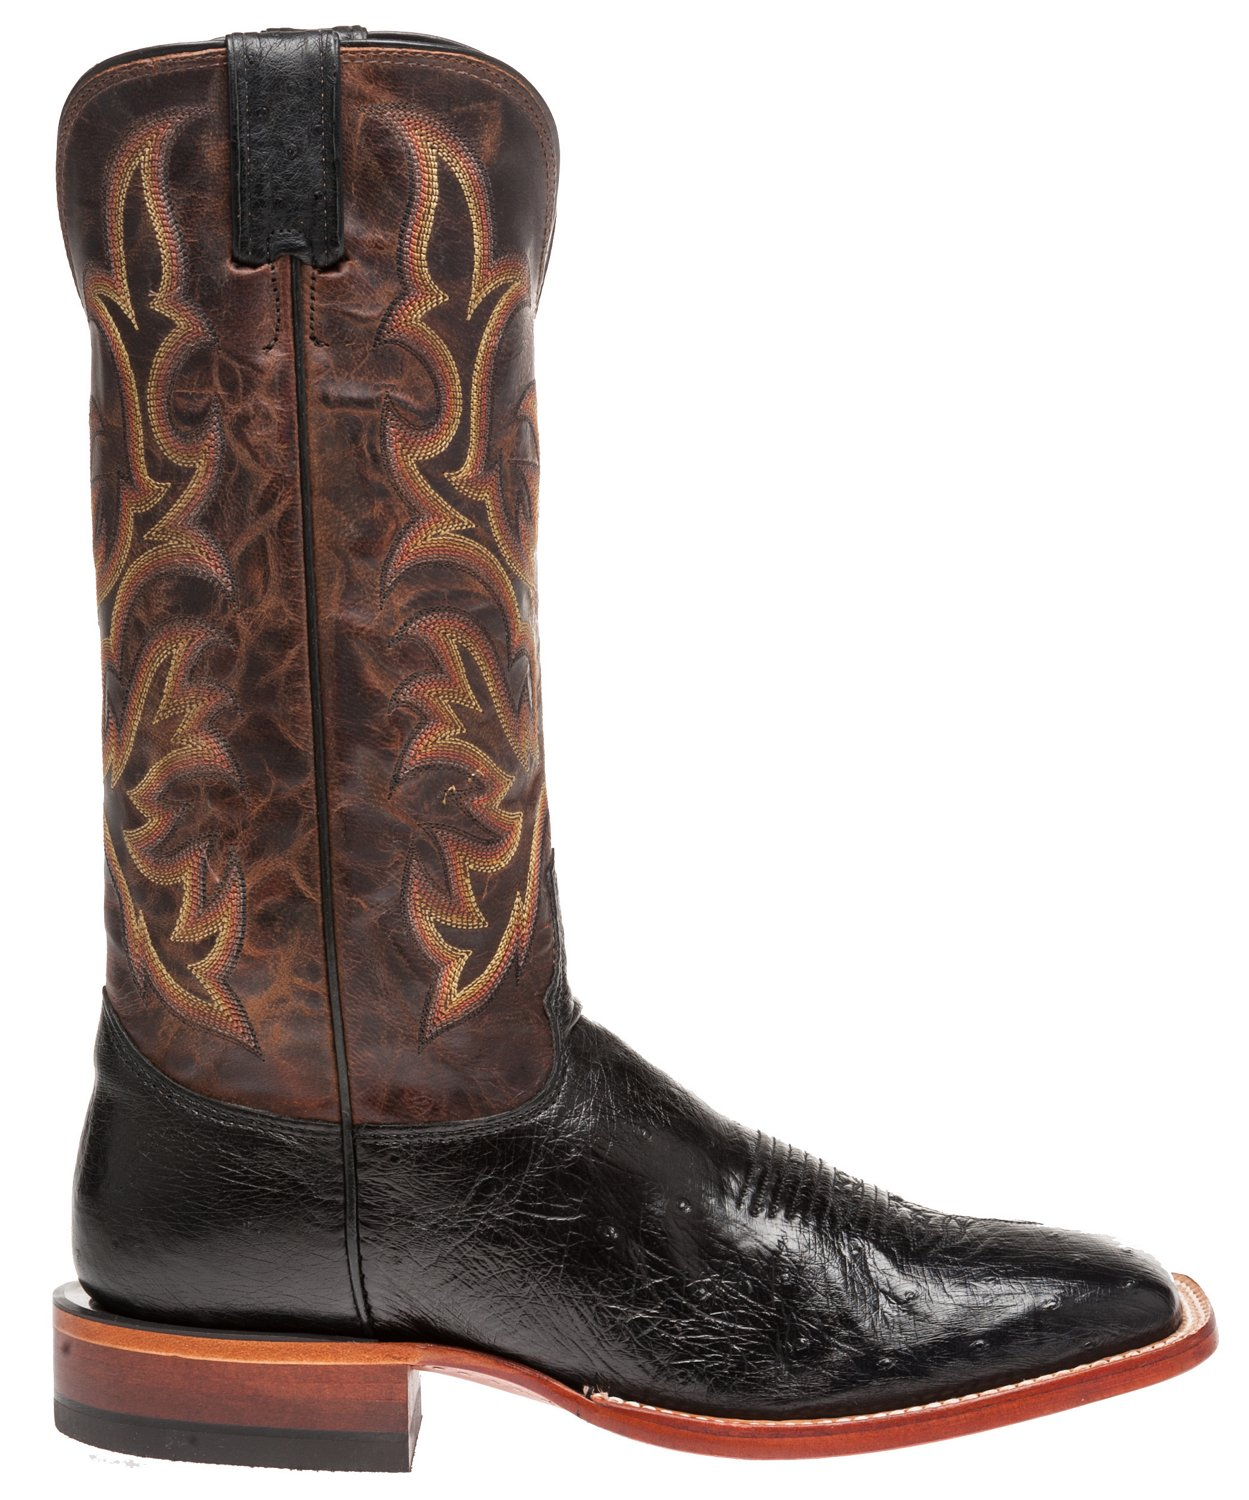 a16695cb6 Display product reviews for Justin Men s Exotics Smooth Ostrich Western  Boots